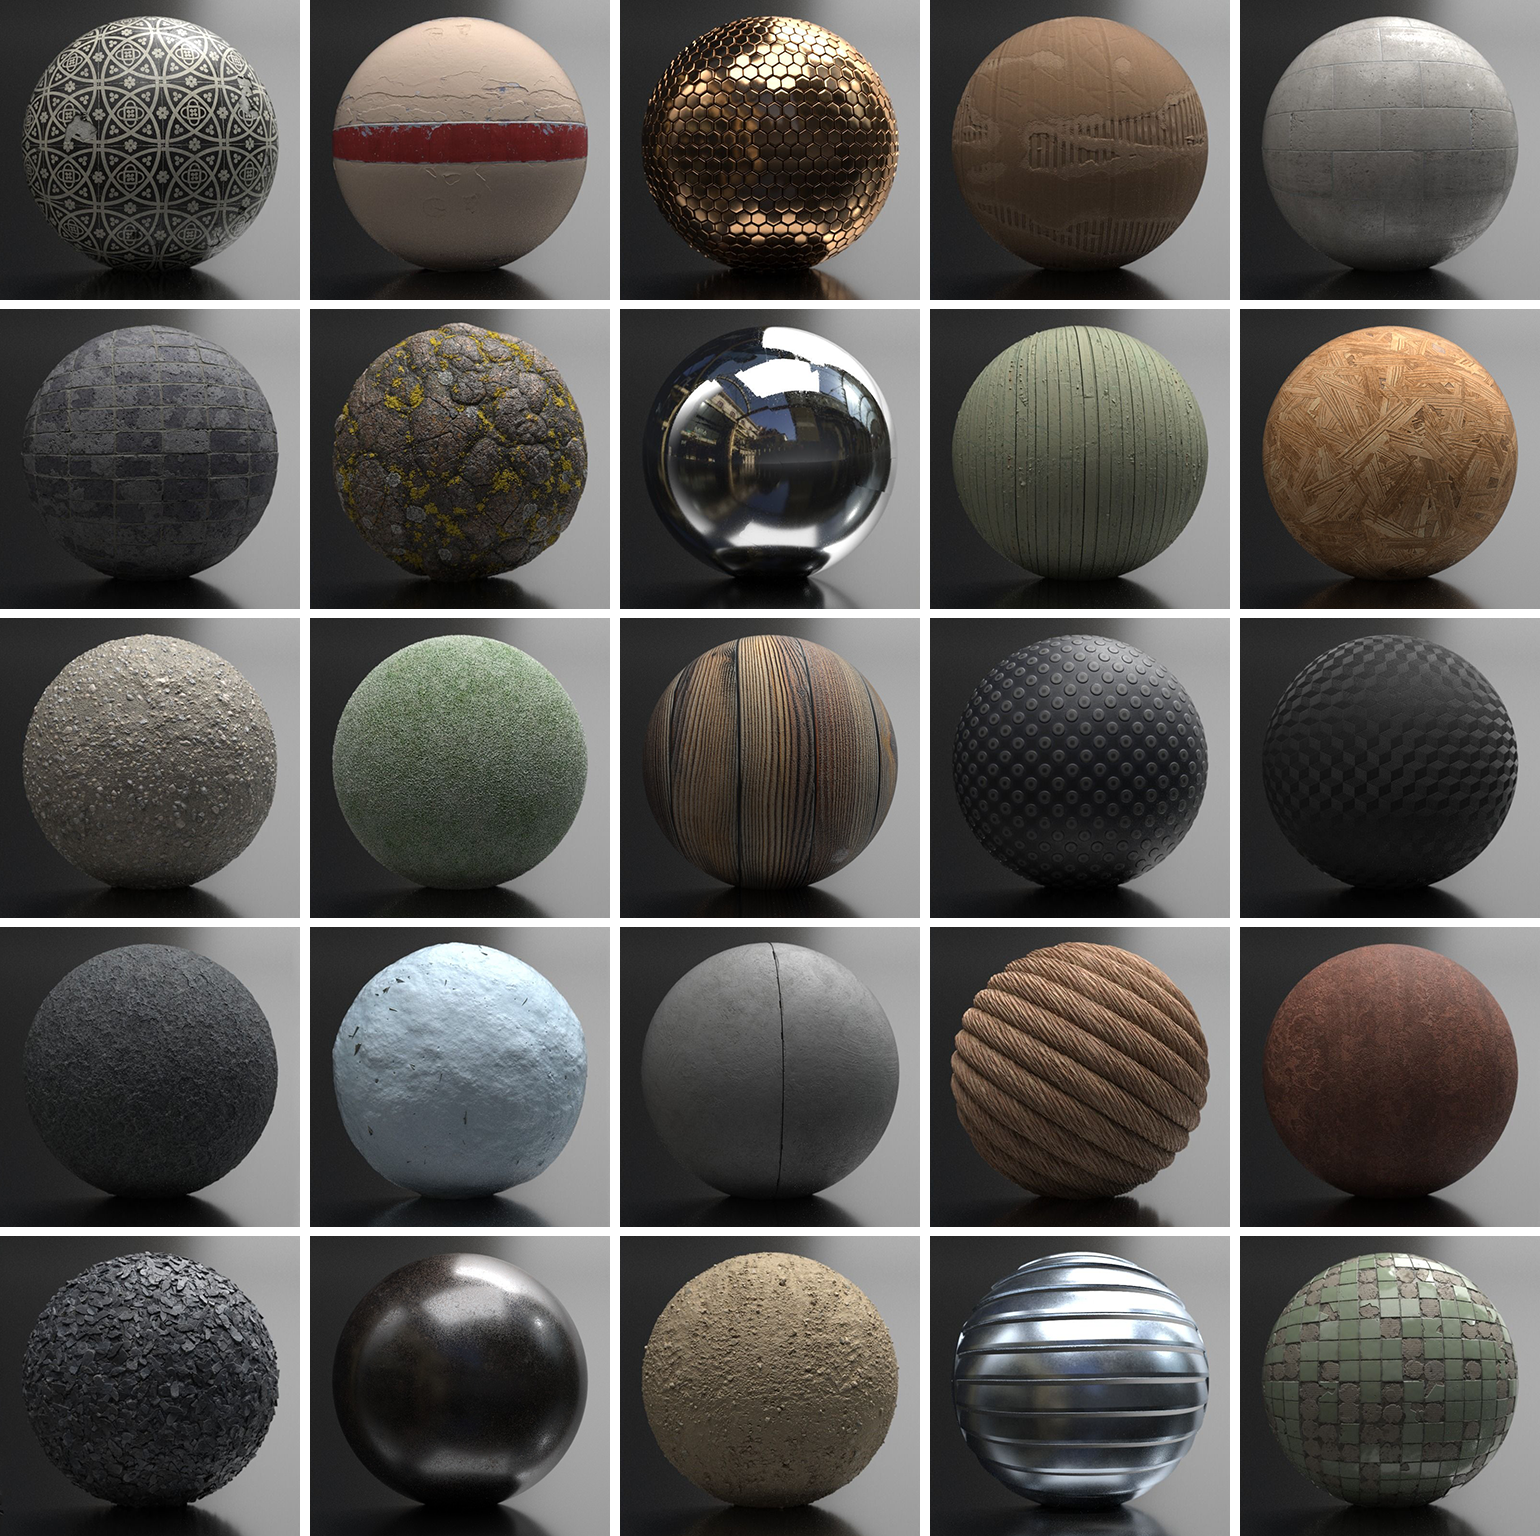 The 25 free Source Materials